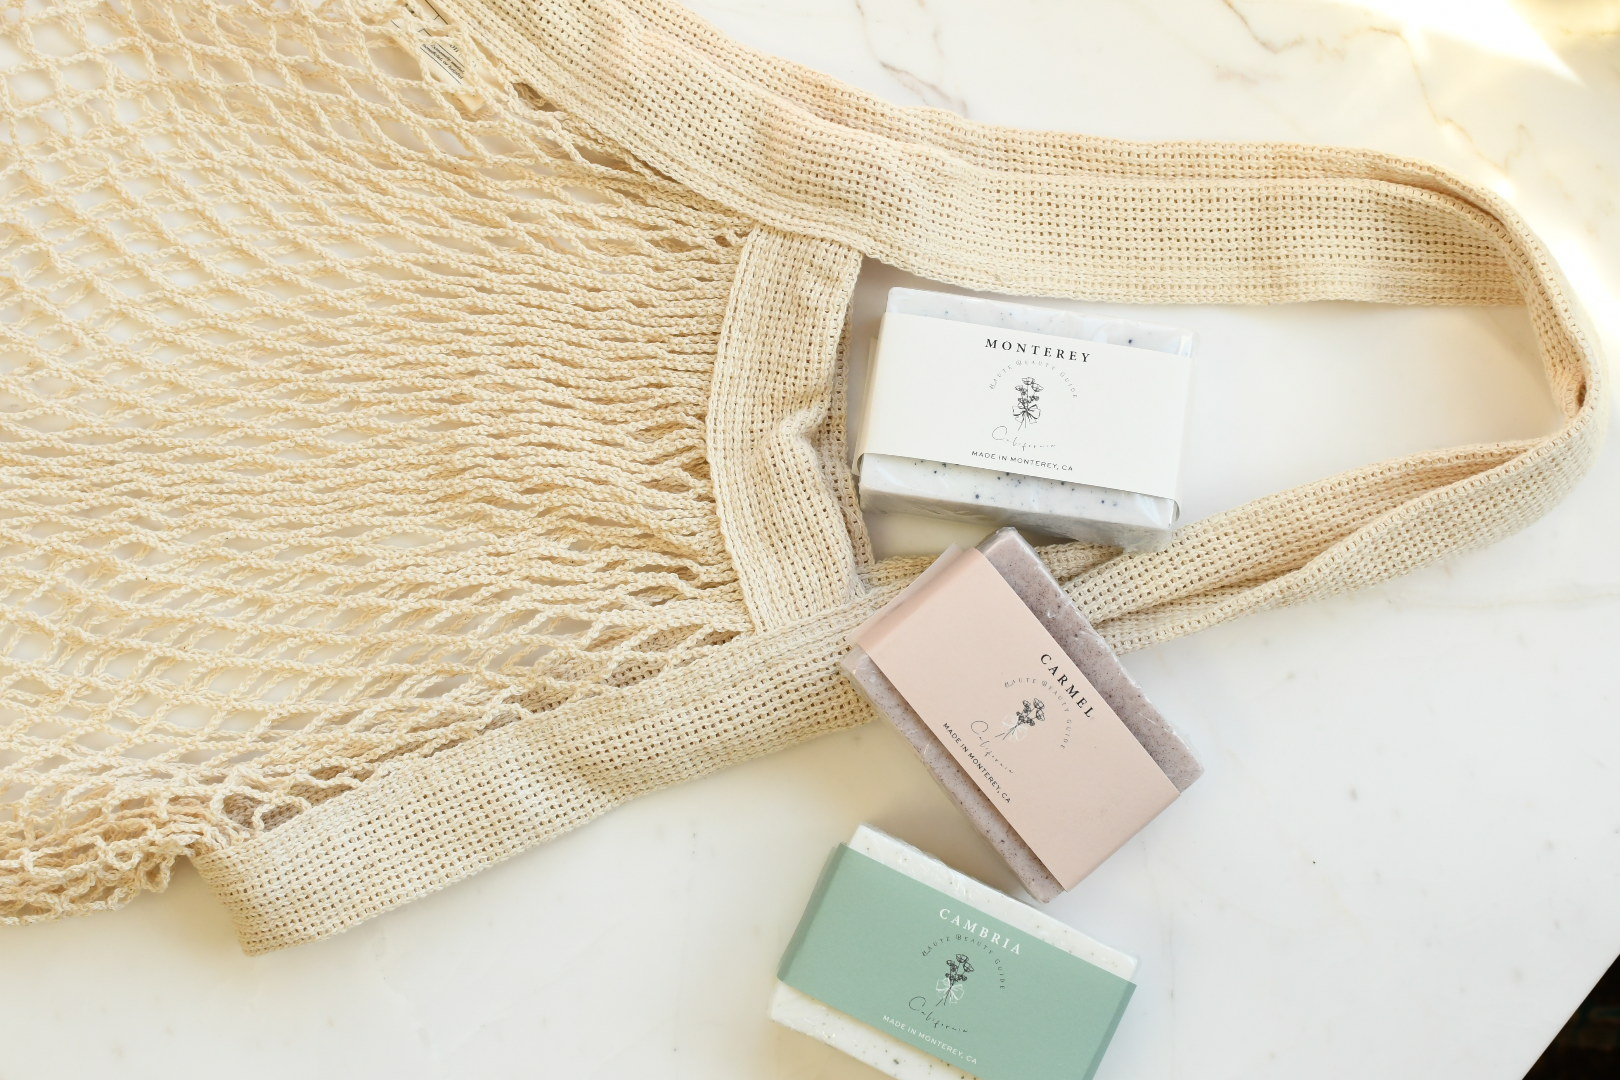 California Products by popular Monterey life and style blog, Haute Beauty Guide: image of California soaps next to a mesh shopping bag.